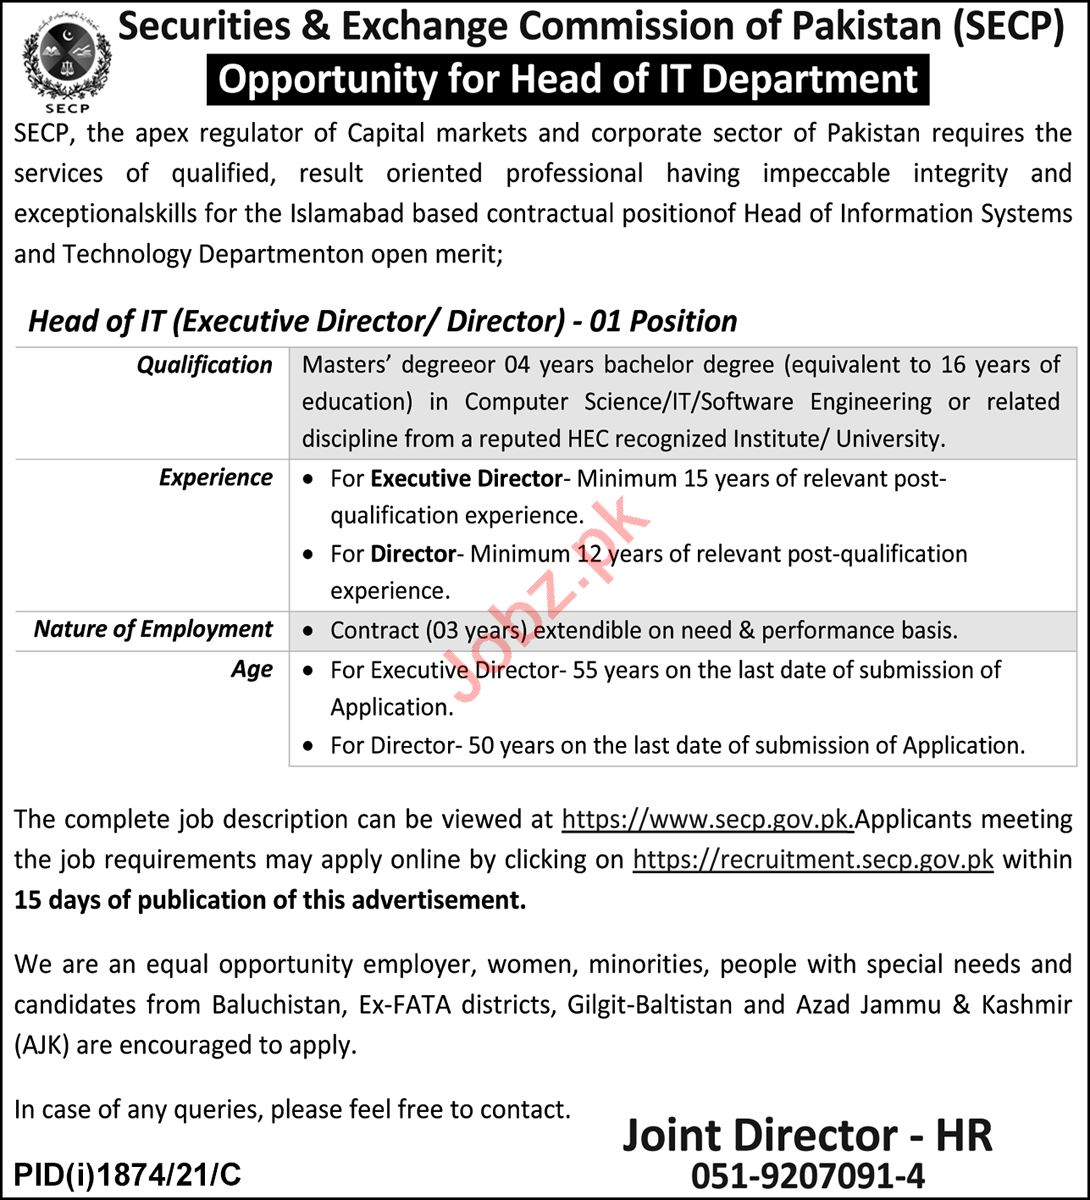 Securitues & Exchange Commission of Pakistan Jobs 2021